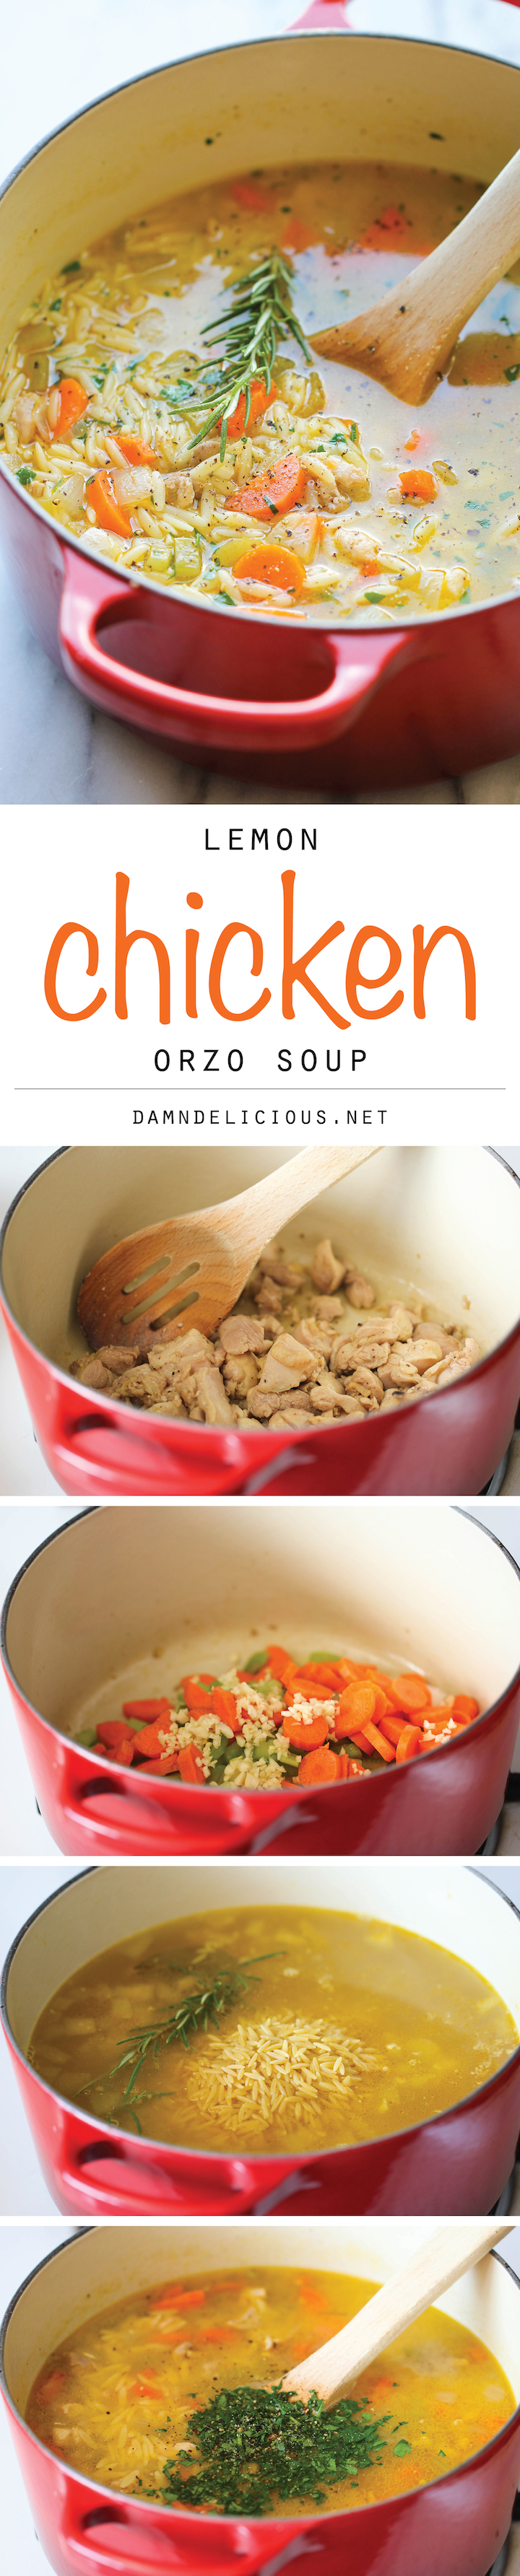 Lemon Chicken Orzo Soup | http://homemaderecipes.com/cooking-102/healthy-recipes/orzo-recipes/